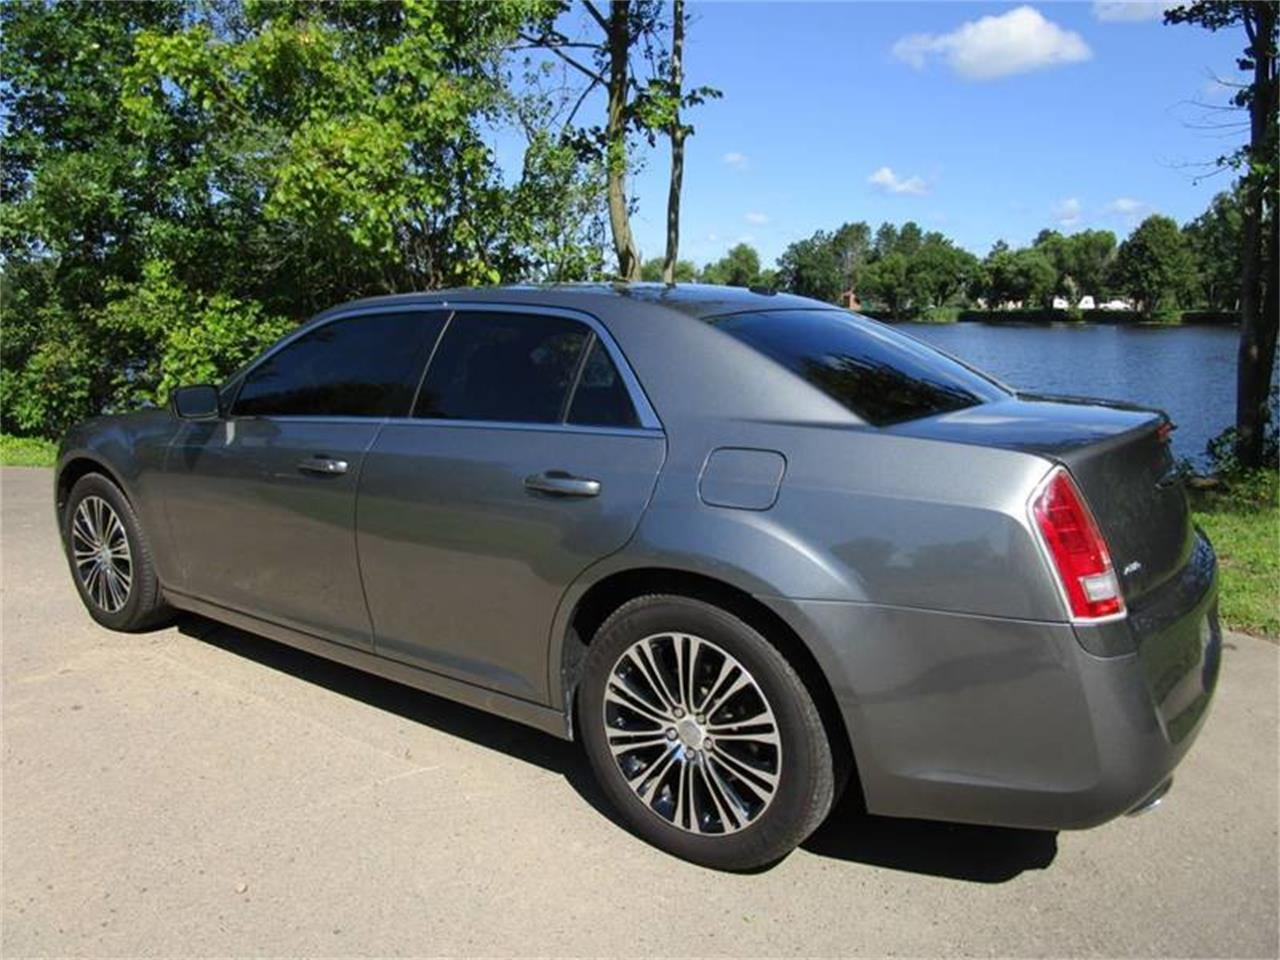 2012 Chrysler 300 for sale in Stanley, WI – photo 2